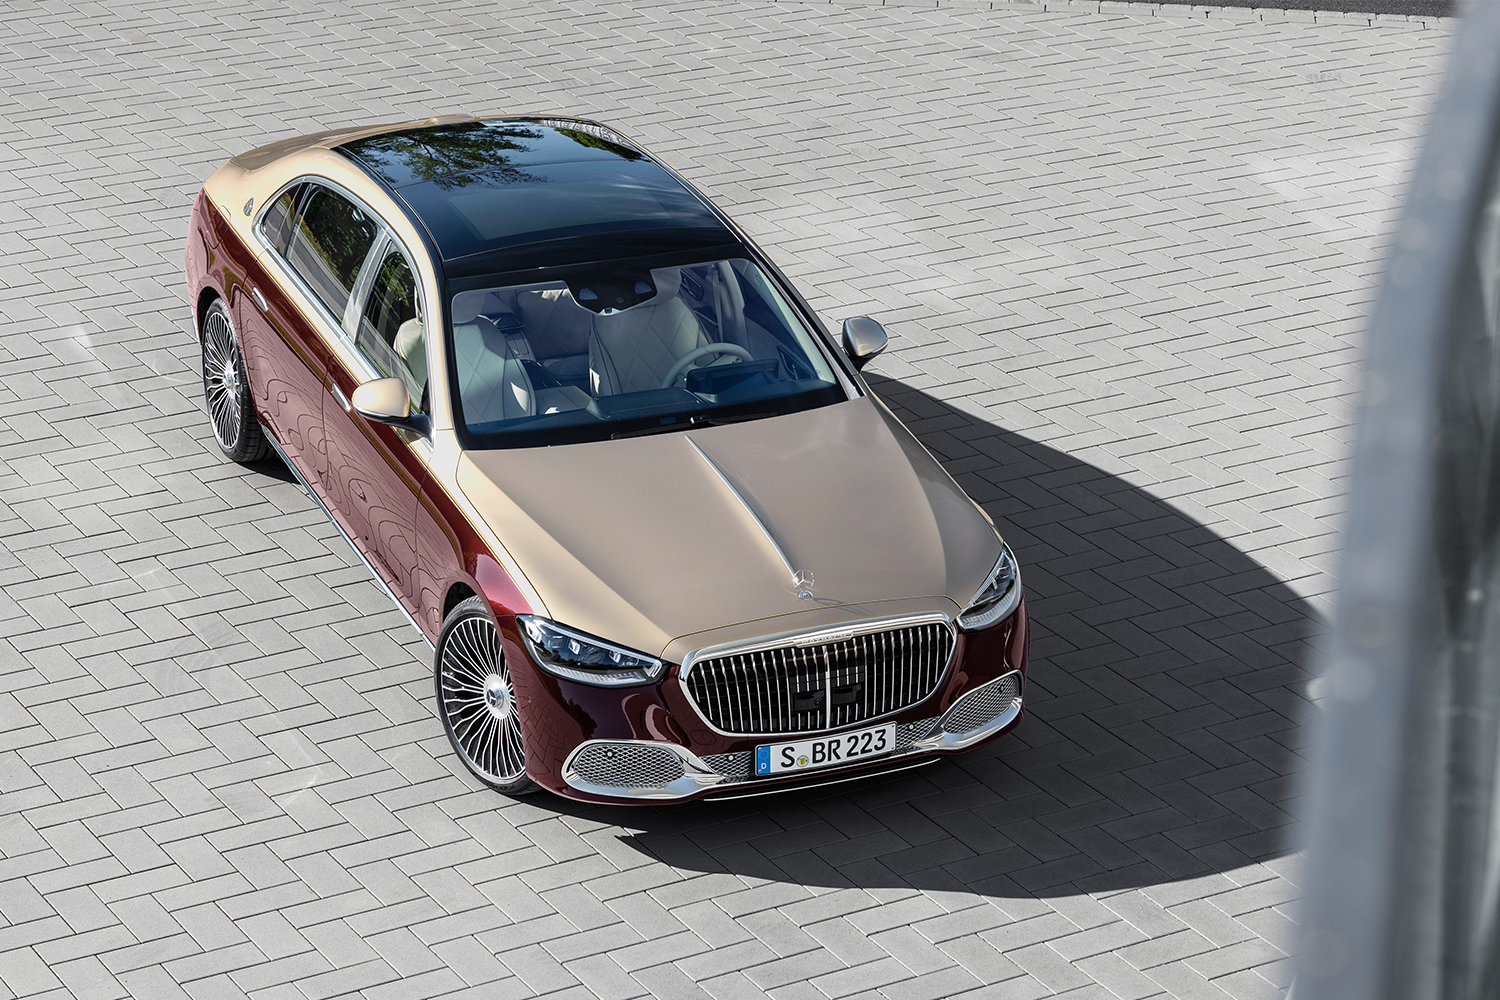 The new new Mercedes-Maybach S-Class car shot from above